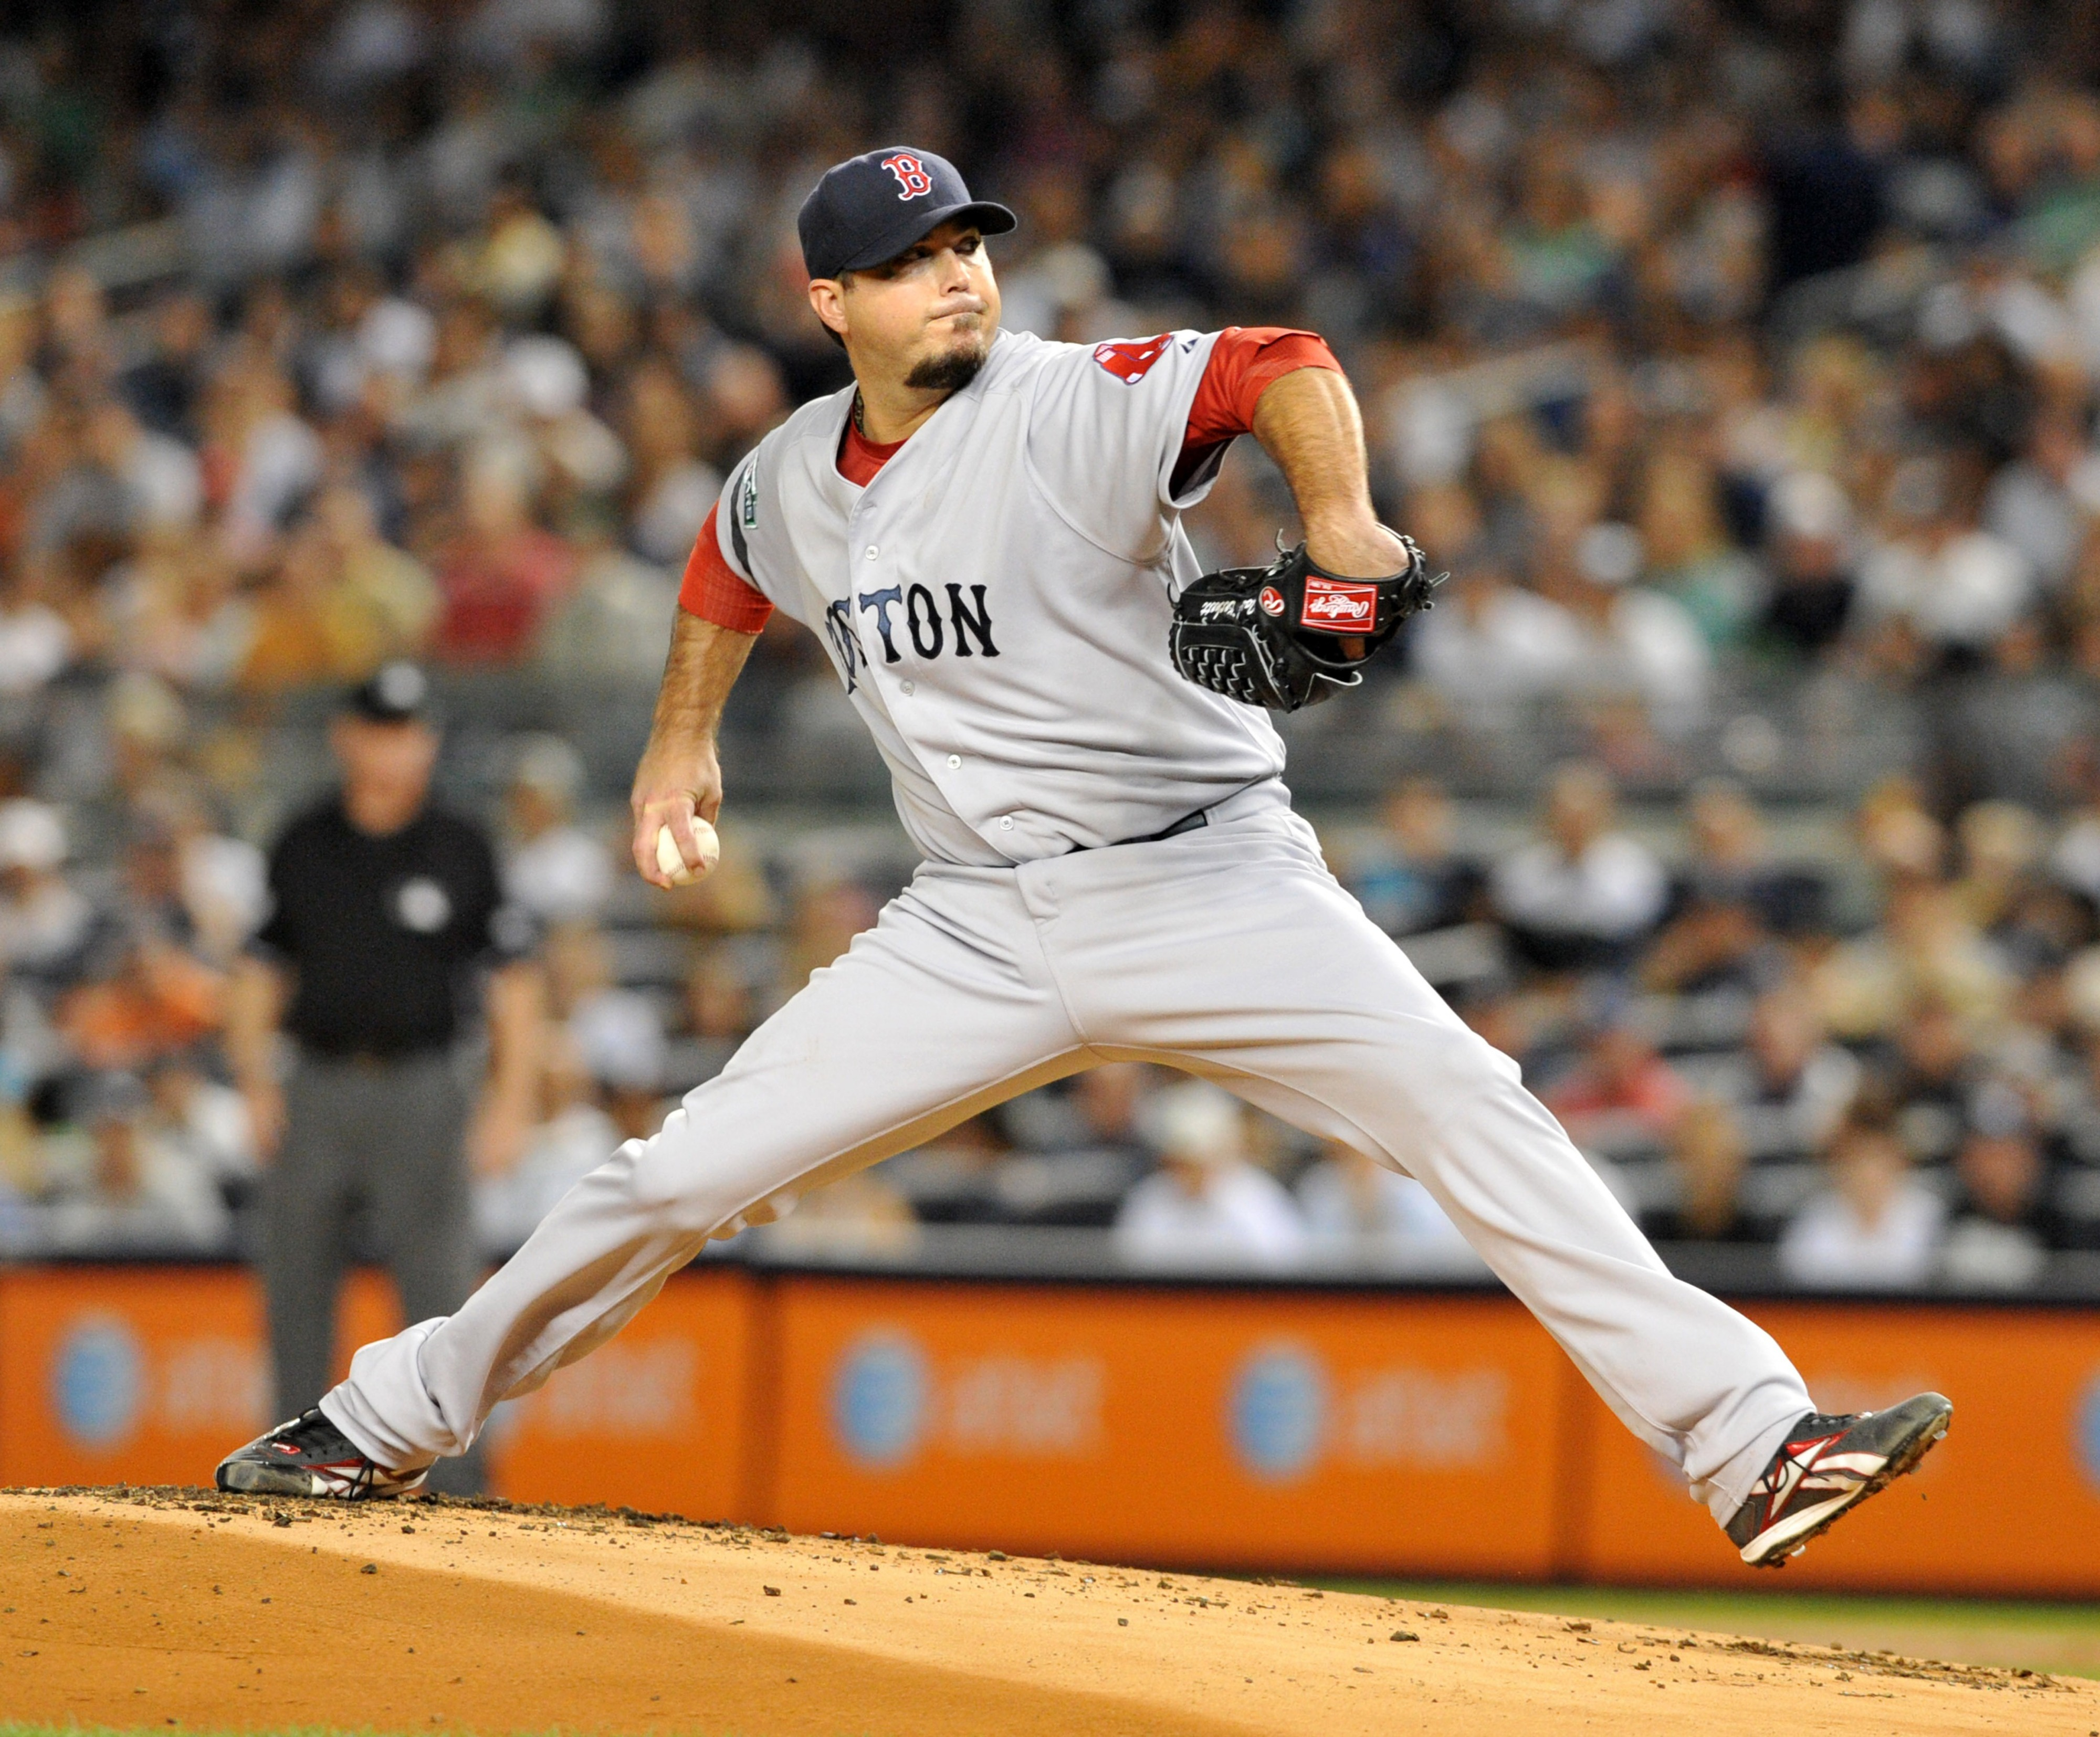 NEW YORK, NY: Josh Beckett #19 of the Boston Red Sox pitches against the New York Yankees at Yankee Stadium in the Bronx borough of New York City. (Photo by Jason Szenes/Getty Images)